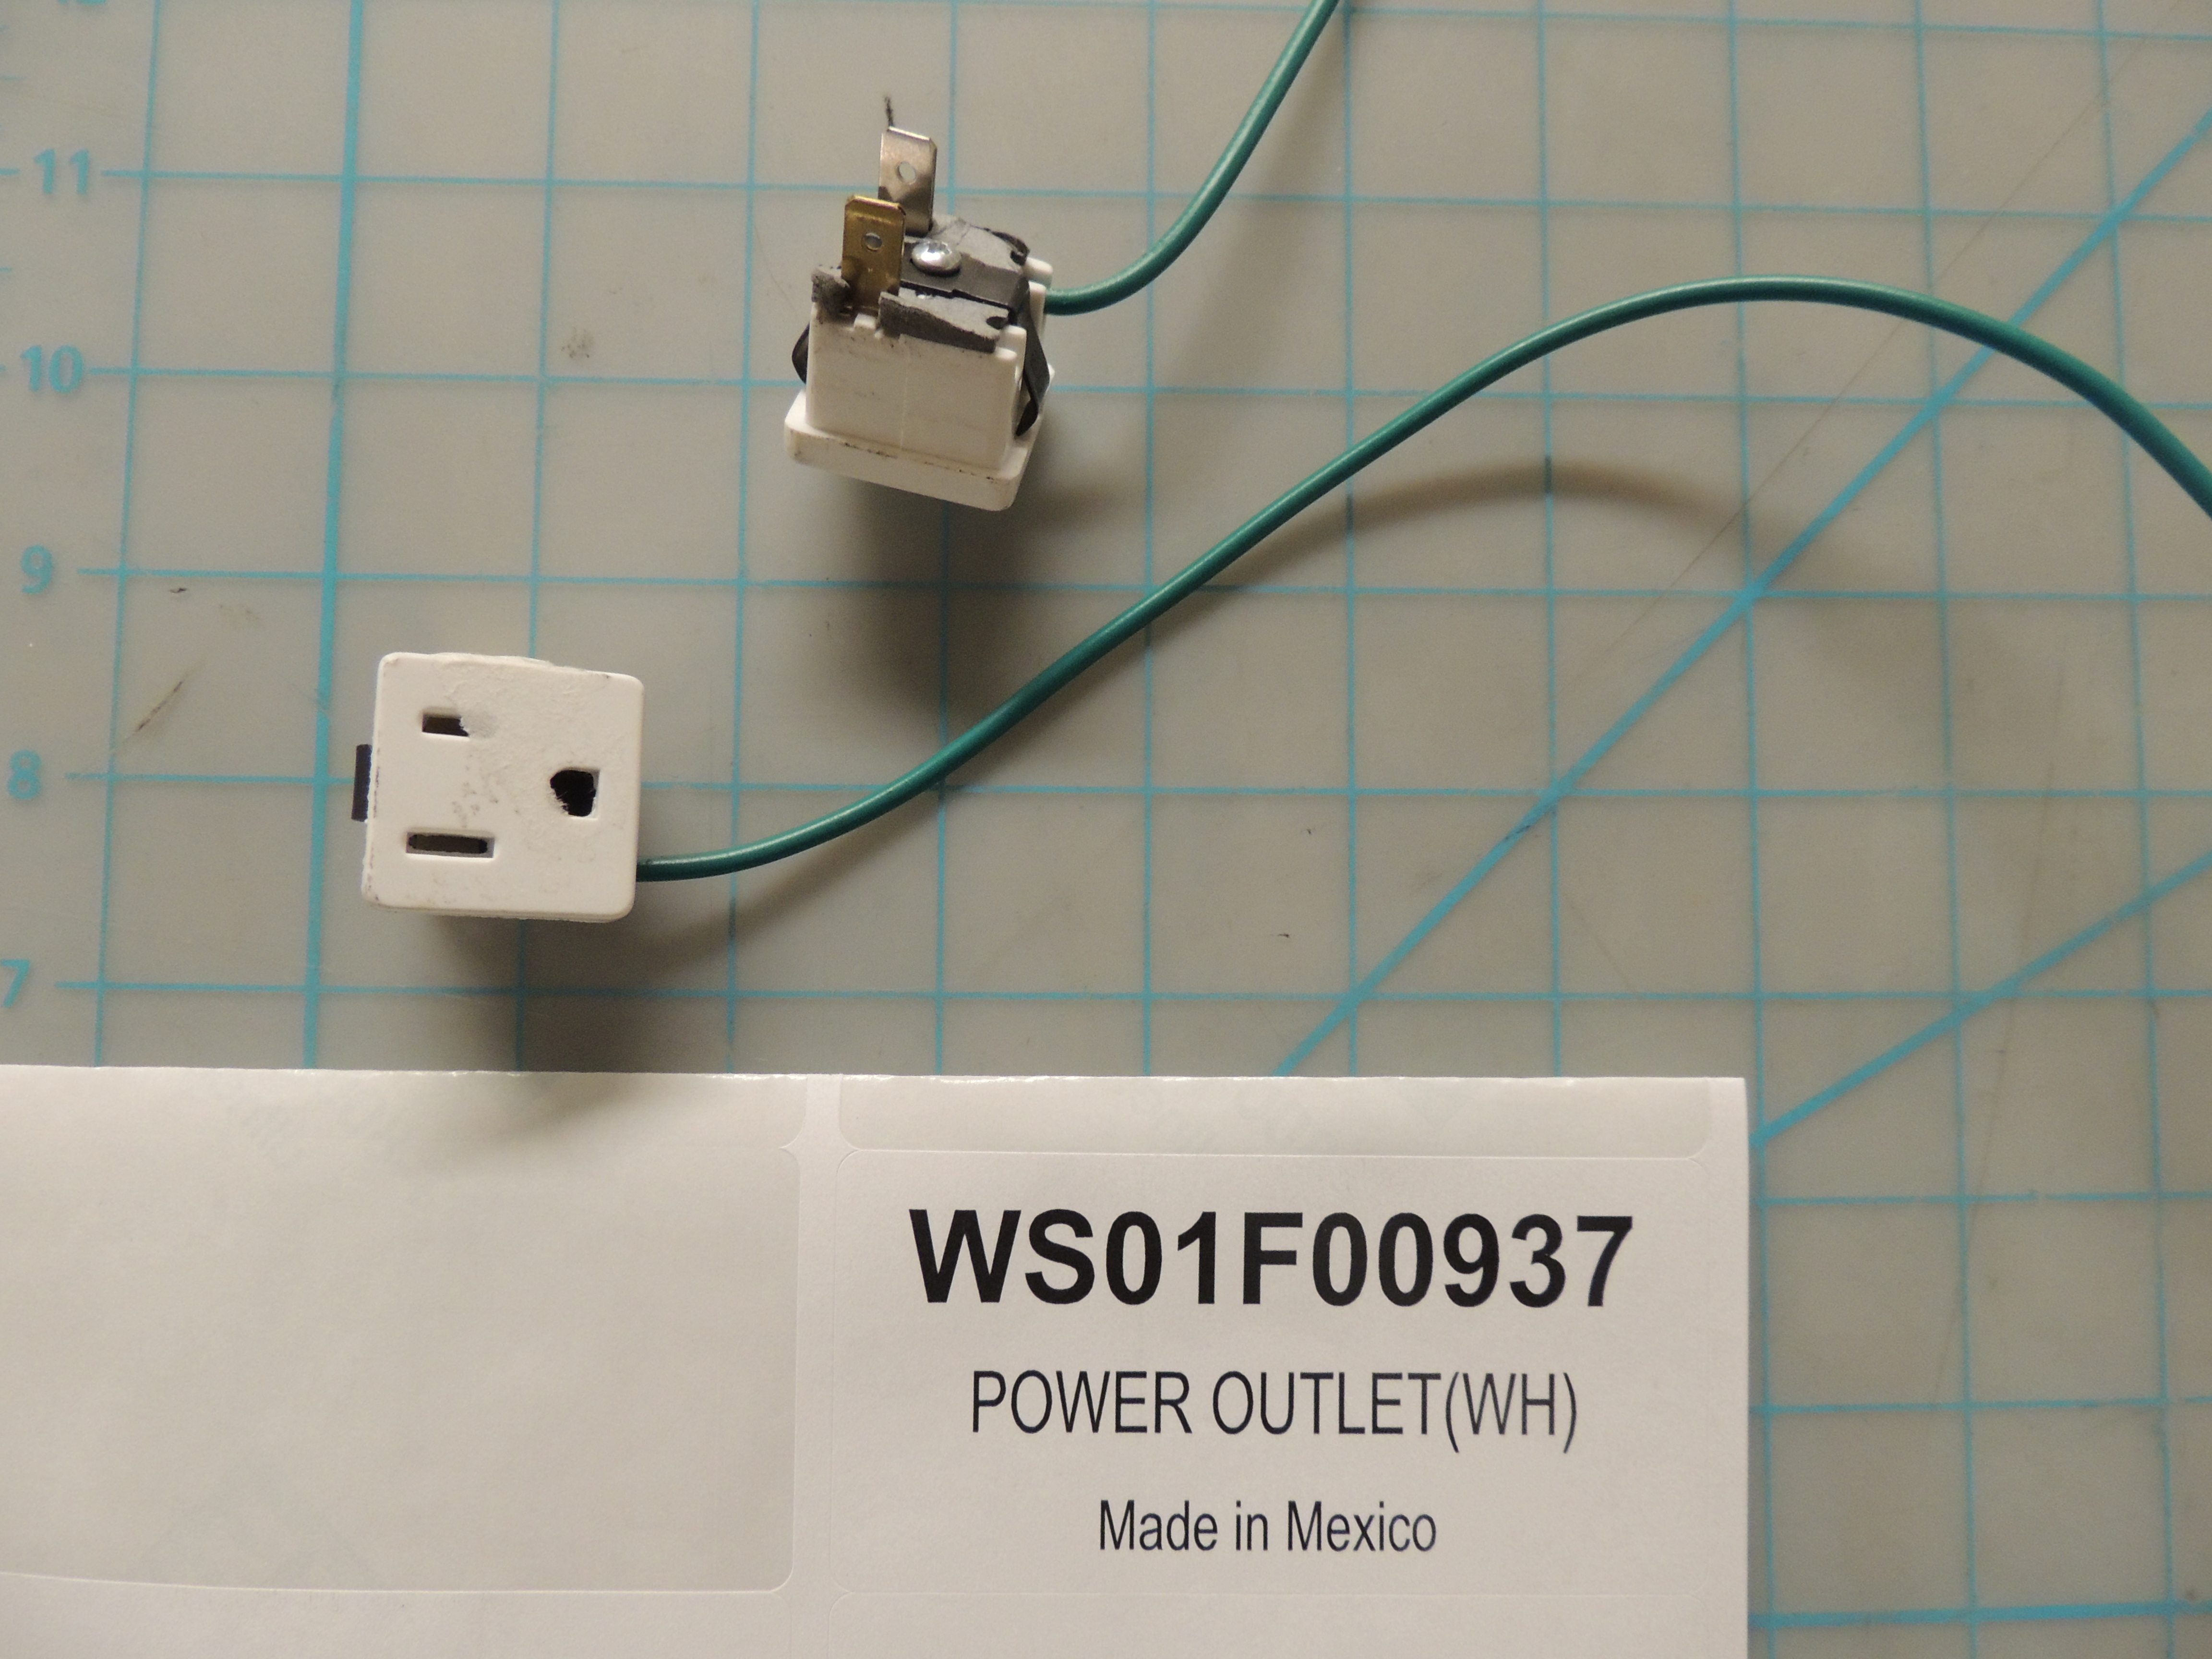 POWER OUTLET(WH)